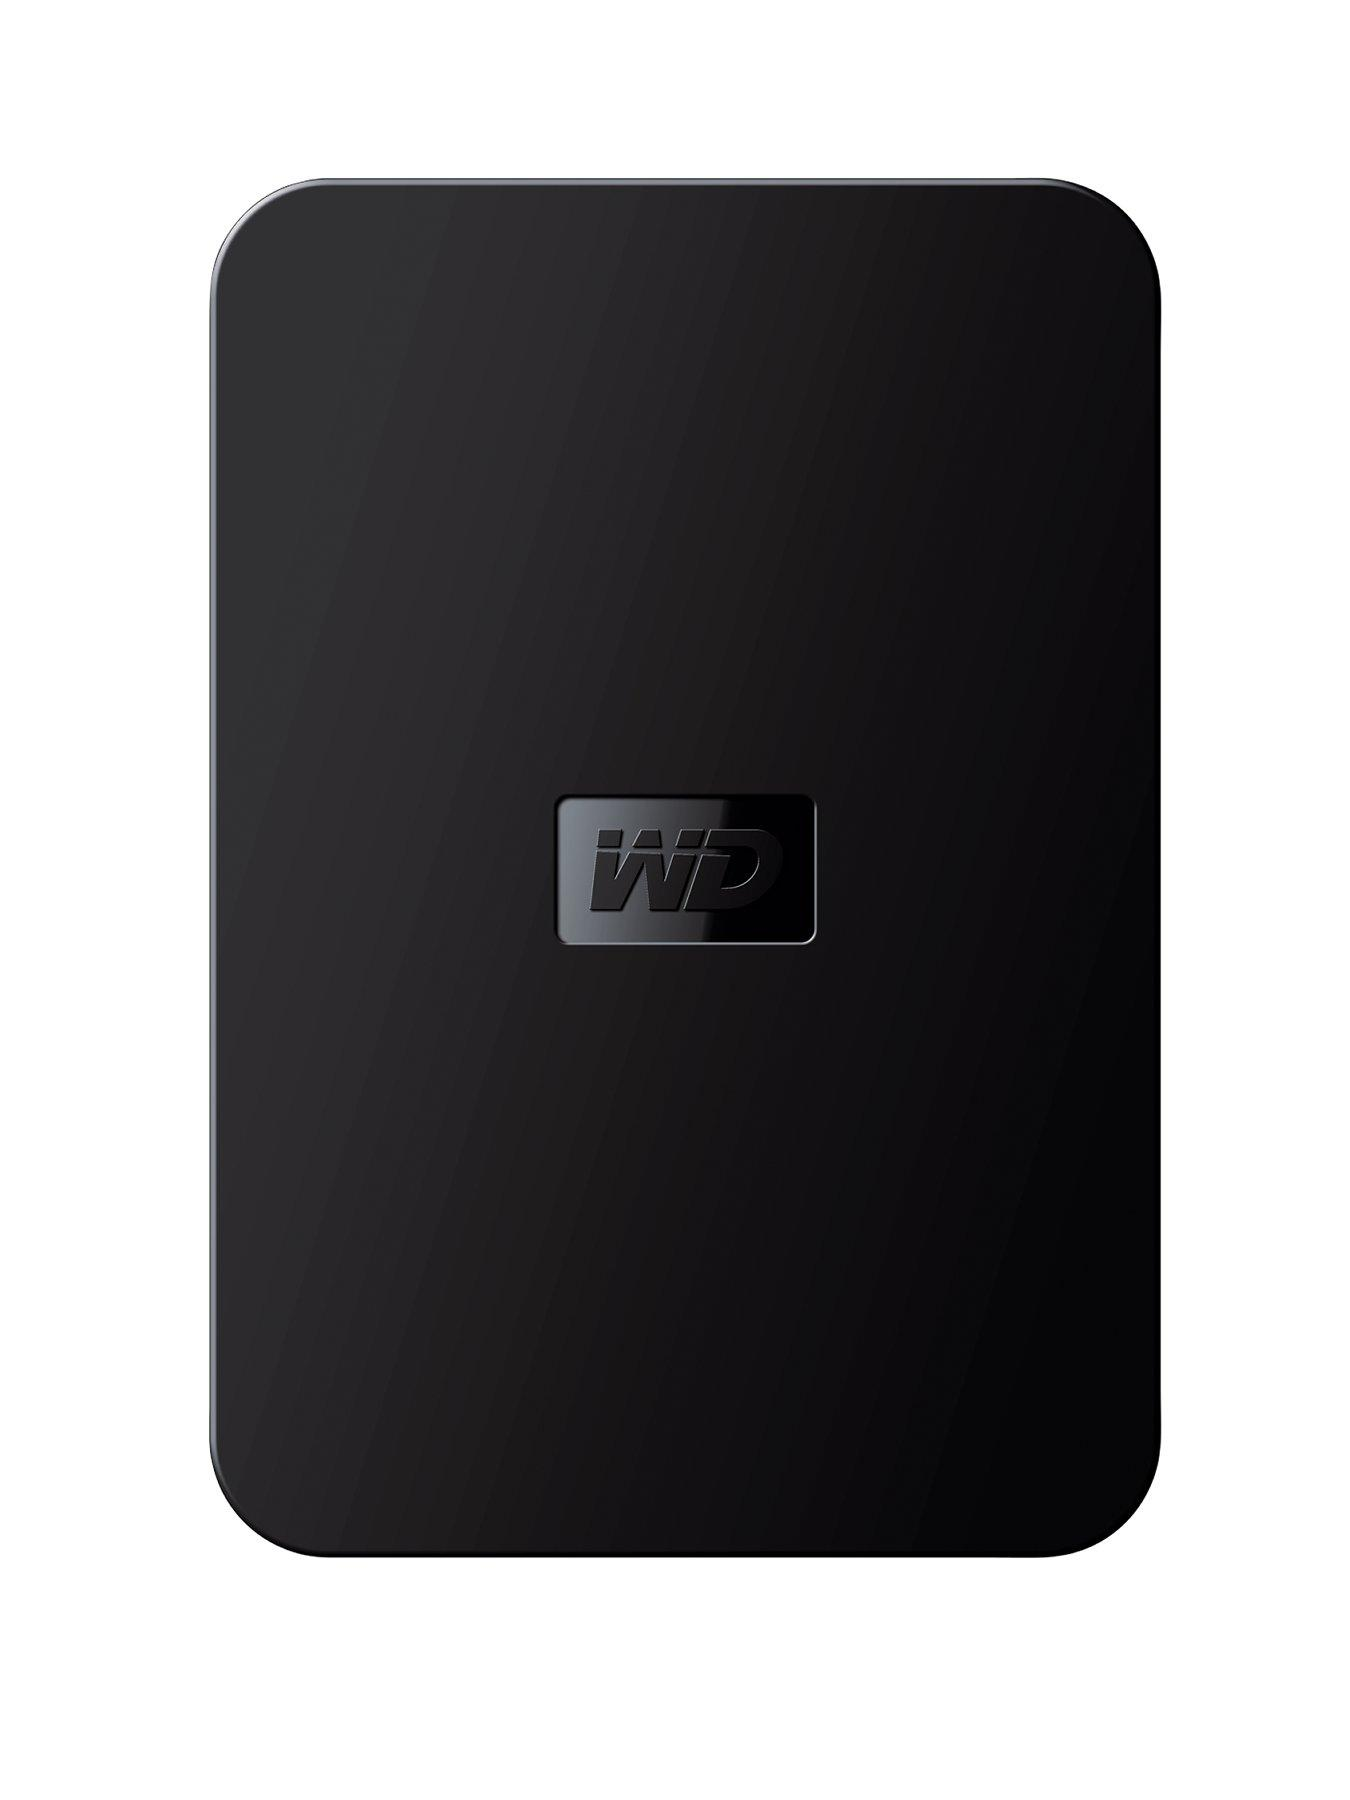 Western Digital Elements 500Gb Portable Hard Drive - Black